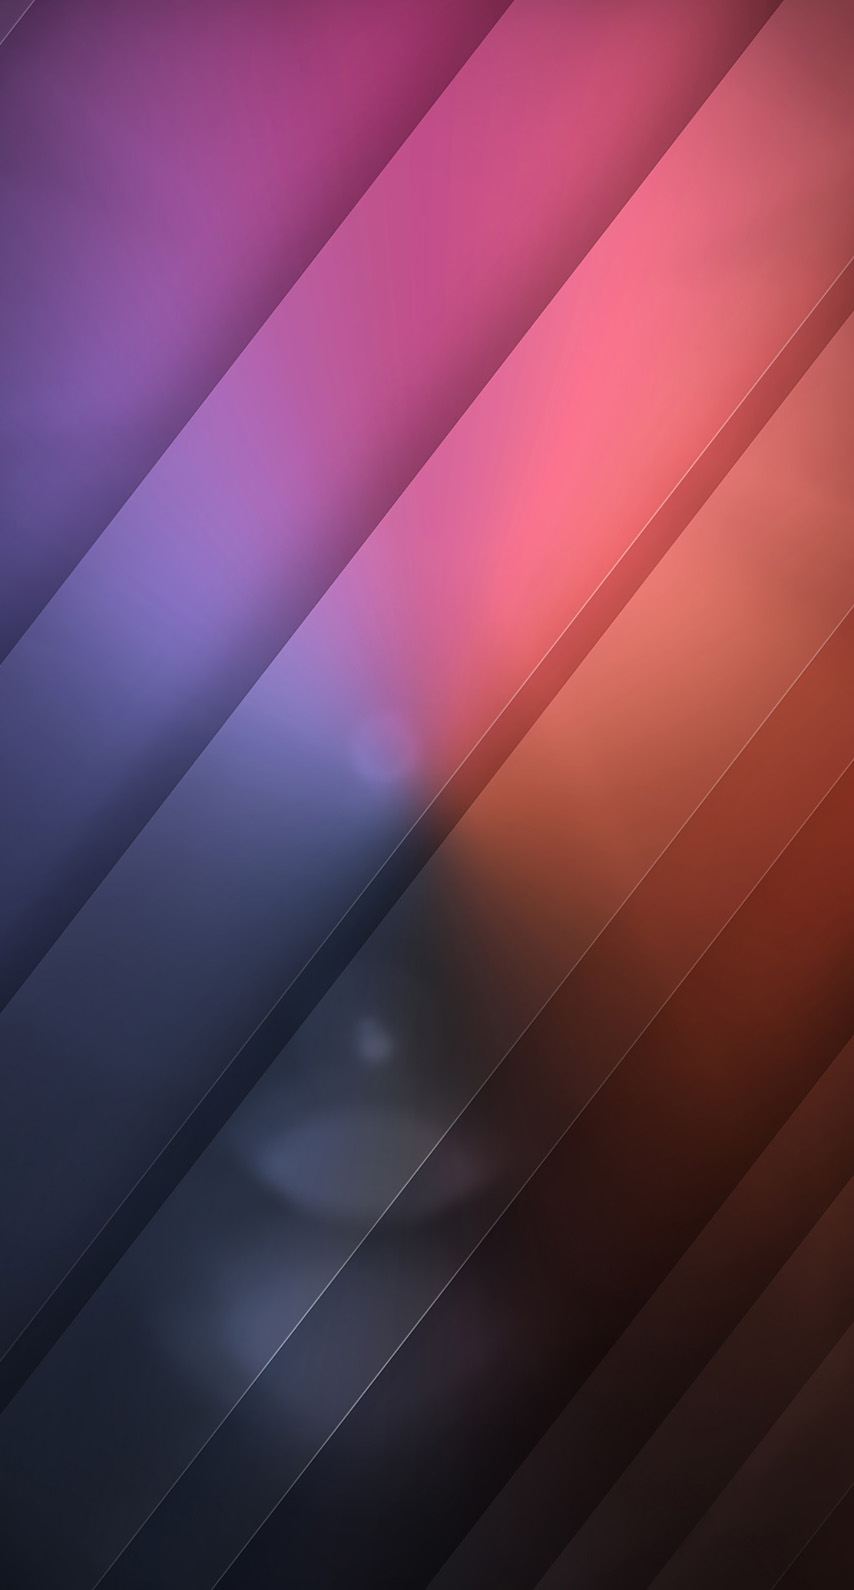 insubstantial, wallpaper, illustration, blur, shape, stripe, no person, smooth, contemporary